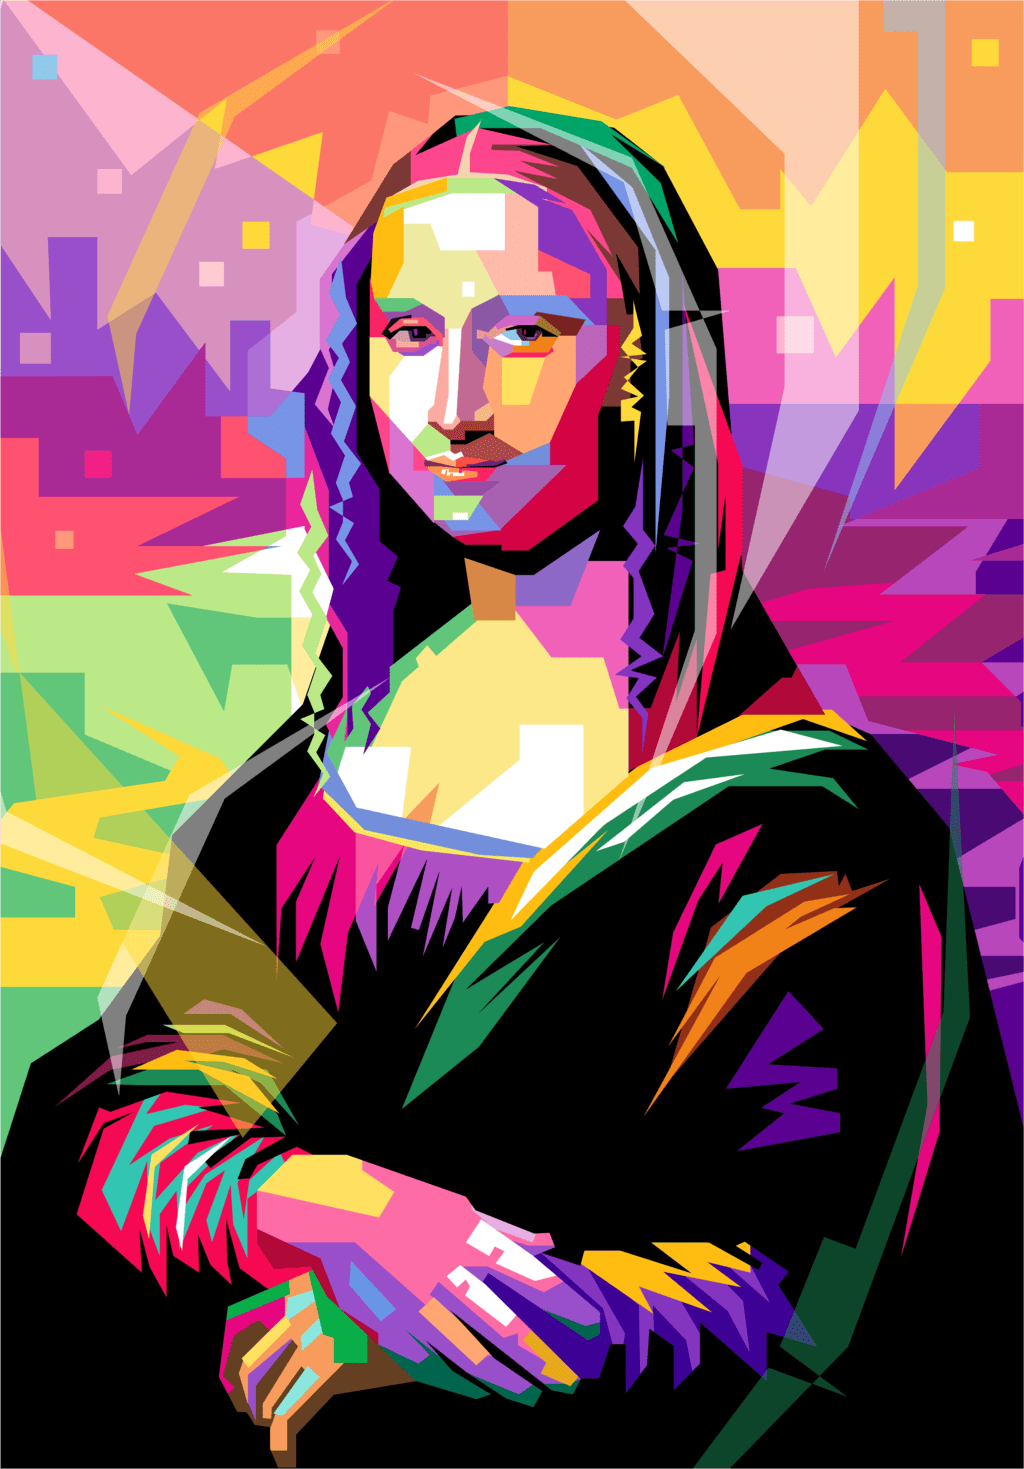 Tableau Joconde Moderne Taylor Swift In Wpap By Iwanuwun On Deviantart Art